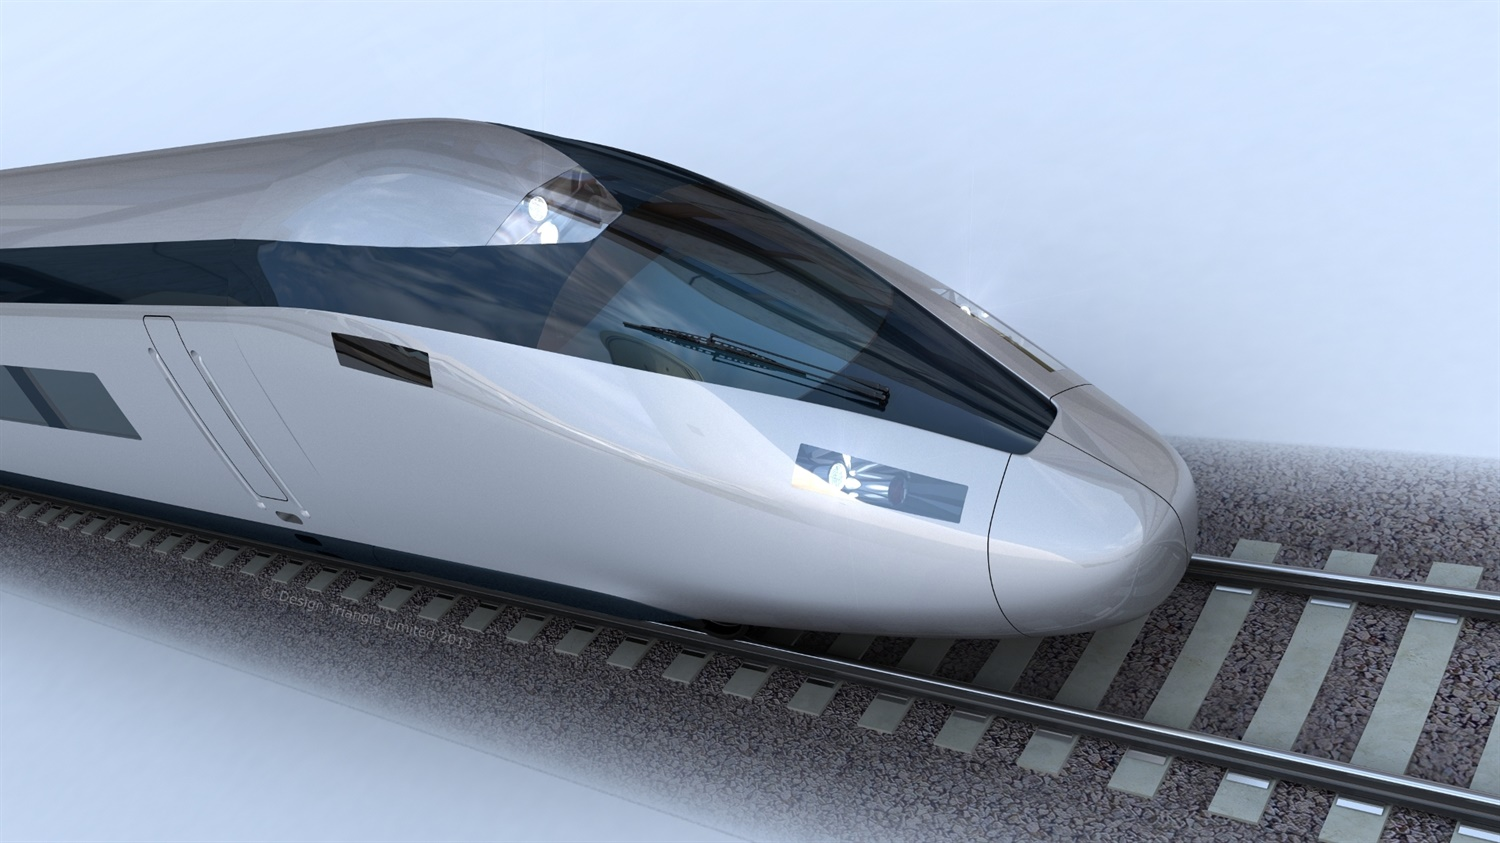 HS2 admits to 'serious error' in £1.76m redundancy payments overspend